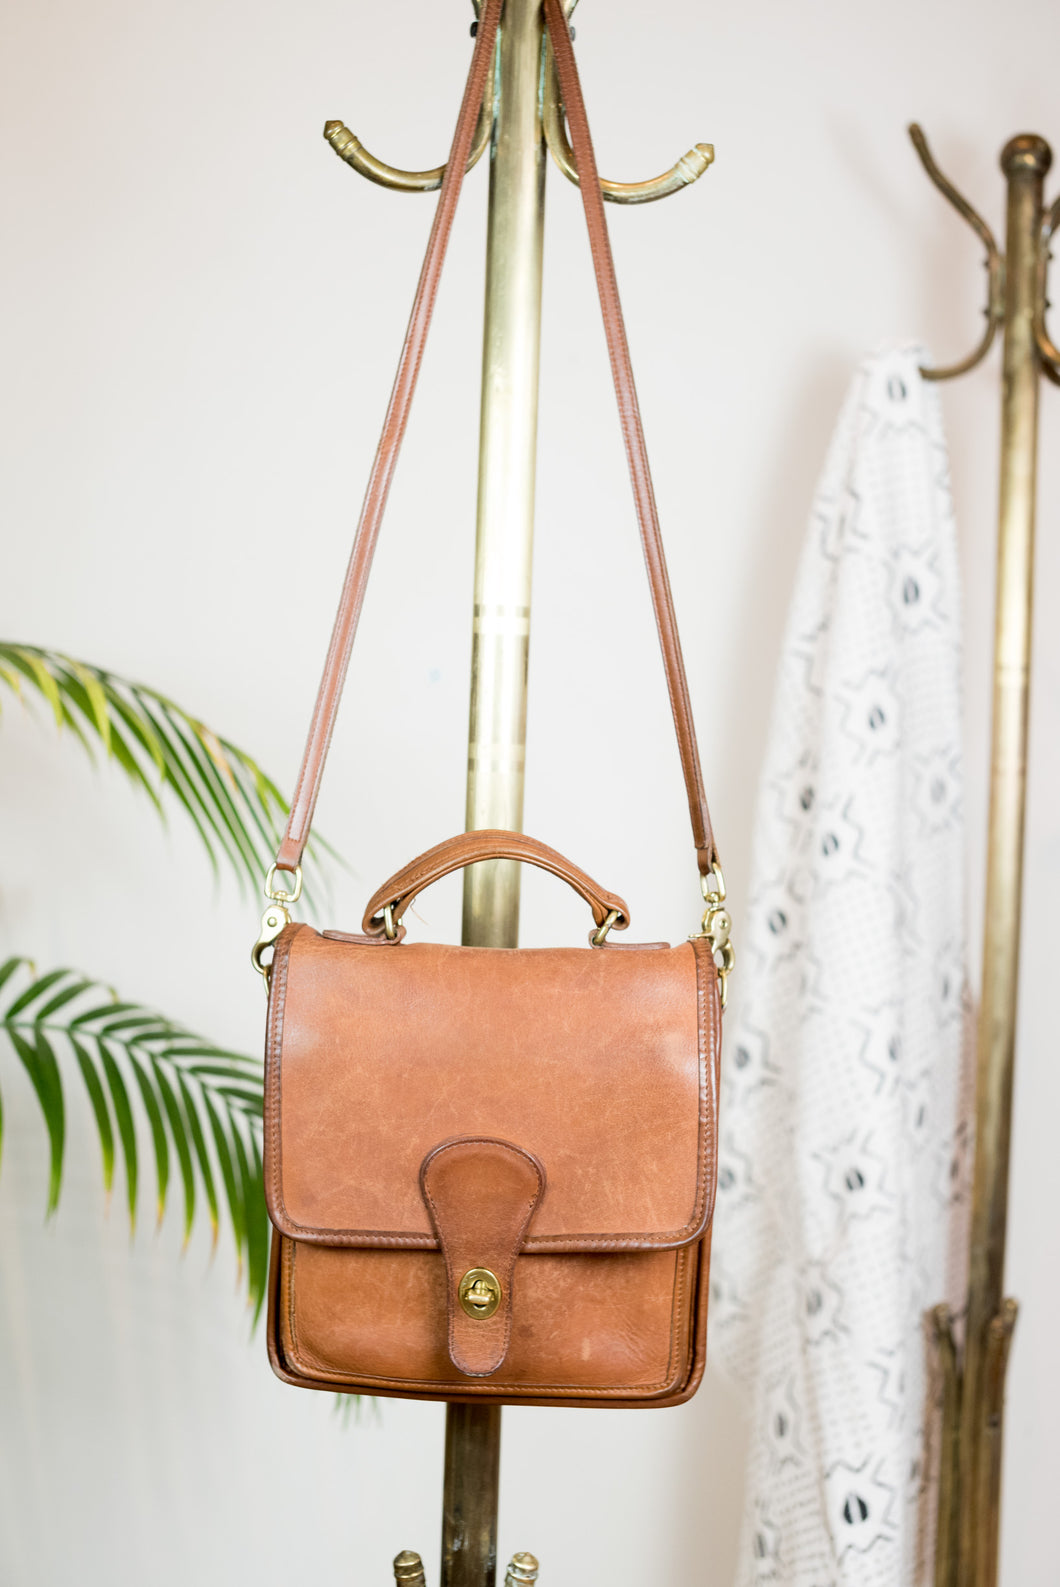 80s Brown Coach Saddle bag